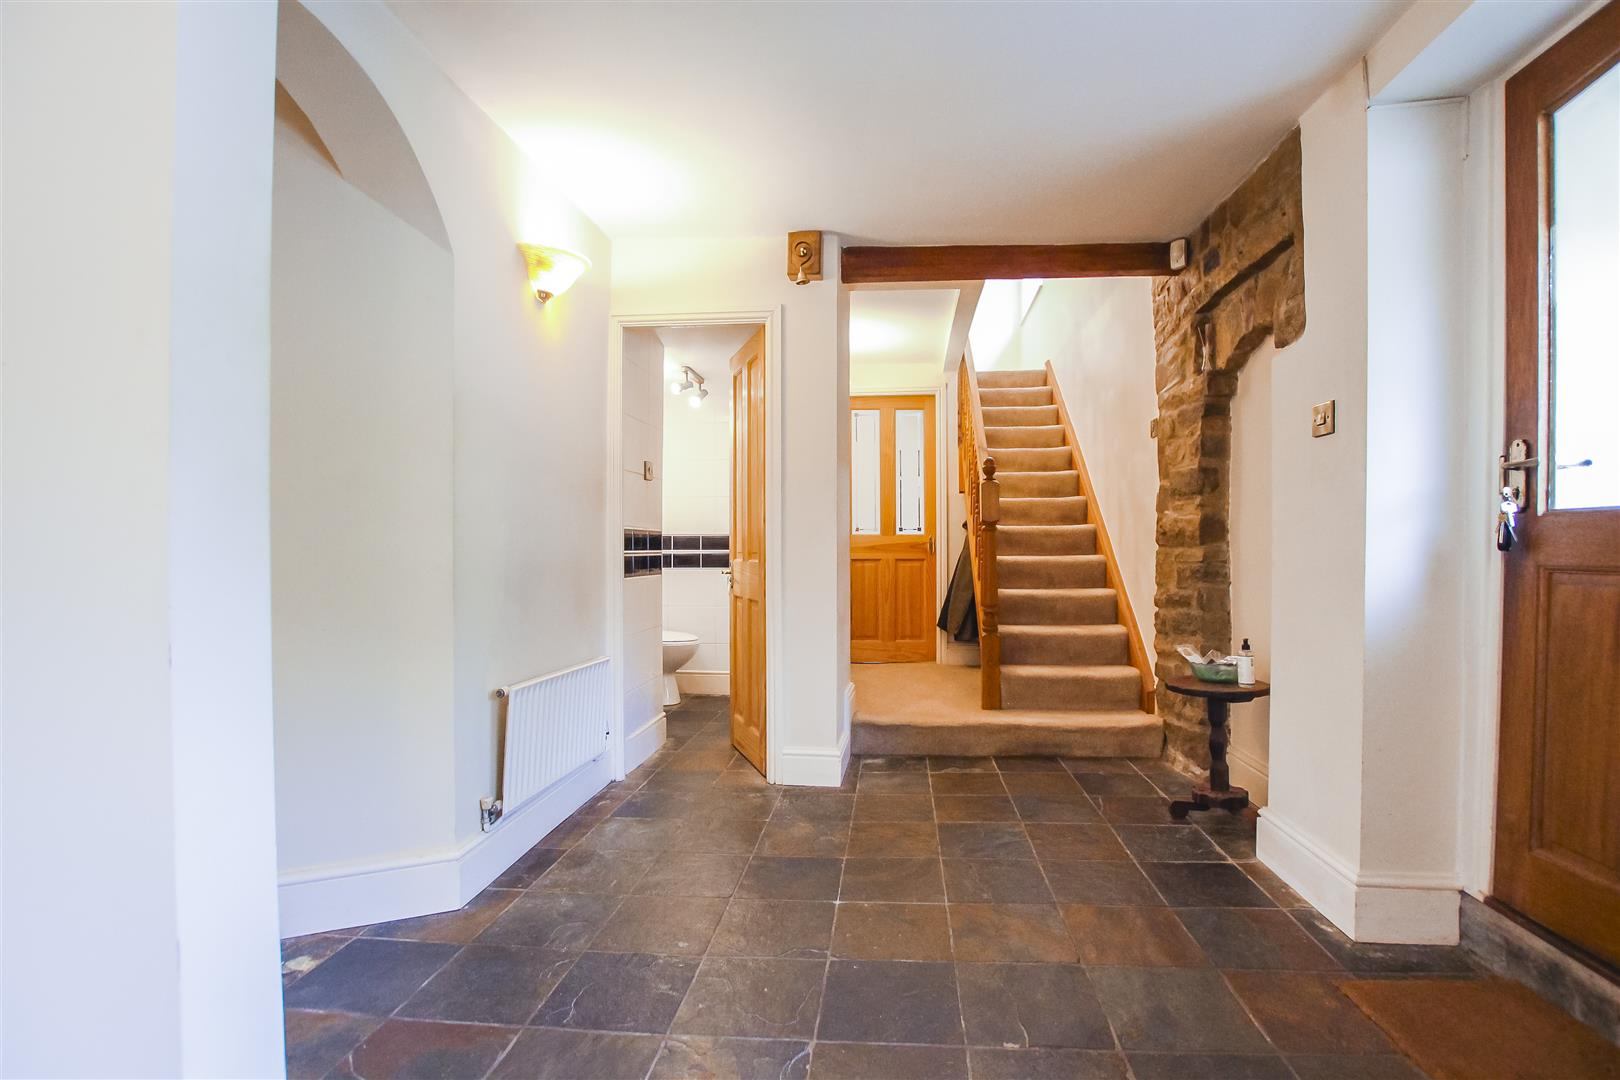 4 Bedroom Farmhouse For Sale - Image 55